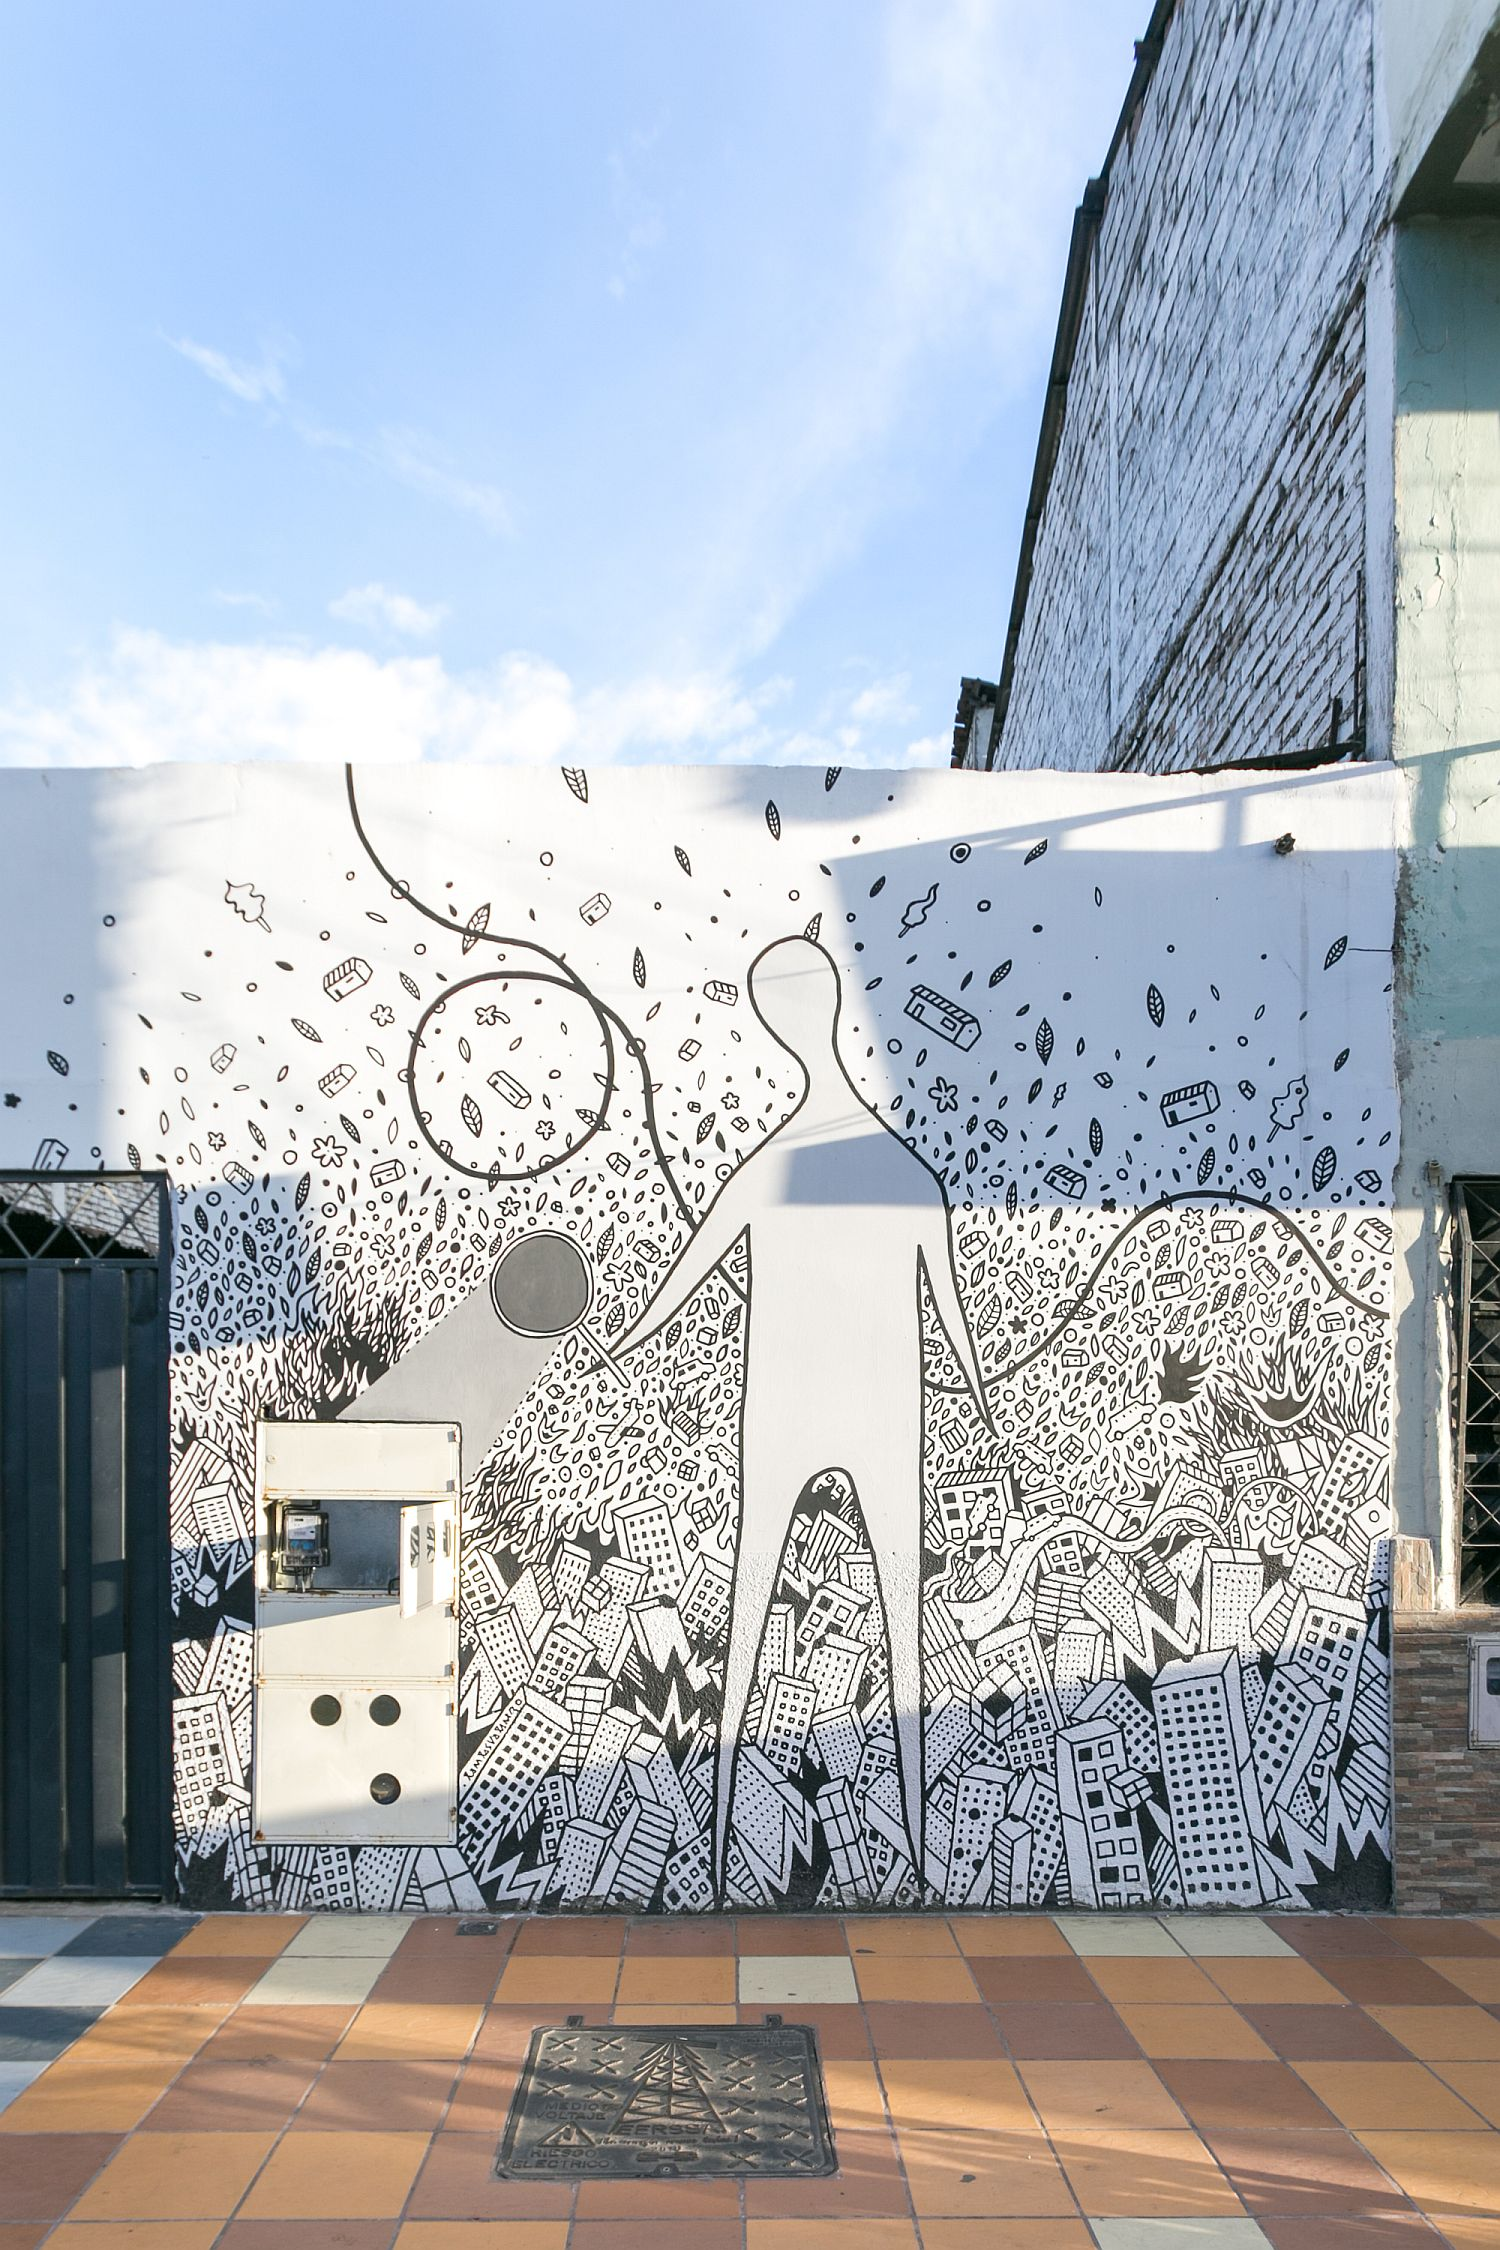 Beautiful-wall-mural-by-architect-Carlos-Valarezo-graces-the-street-facade-of-the-office